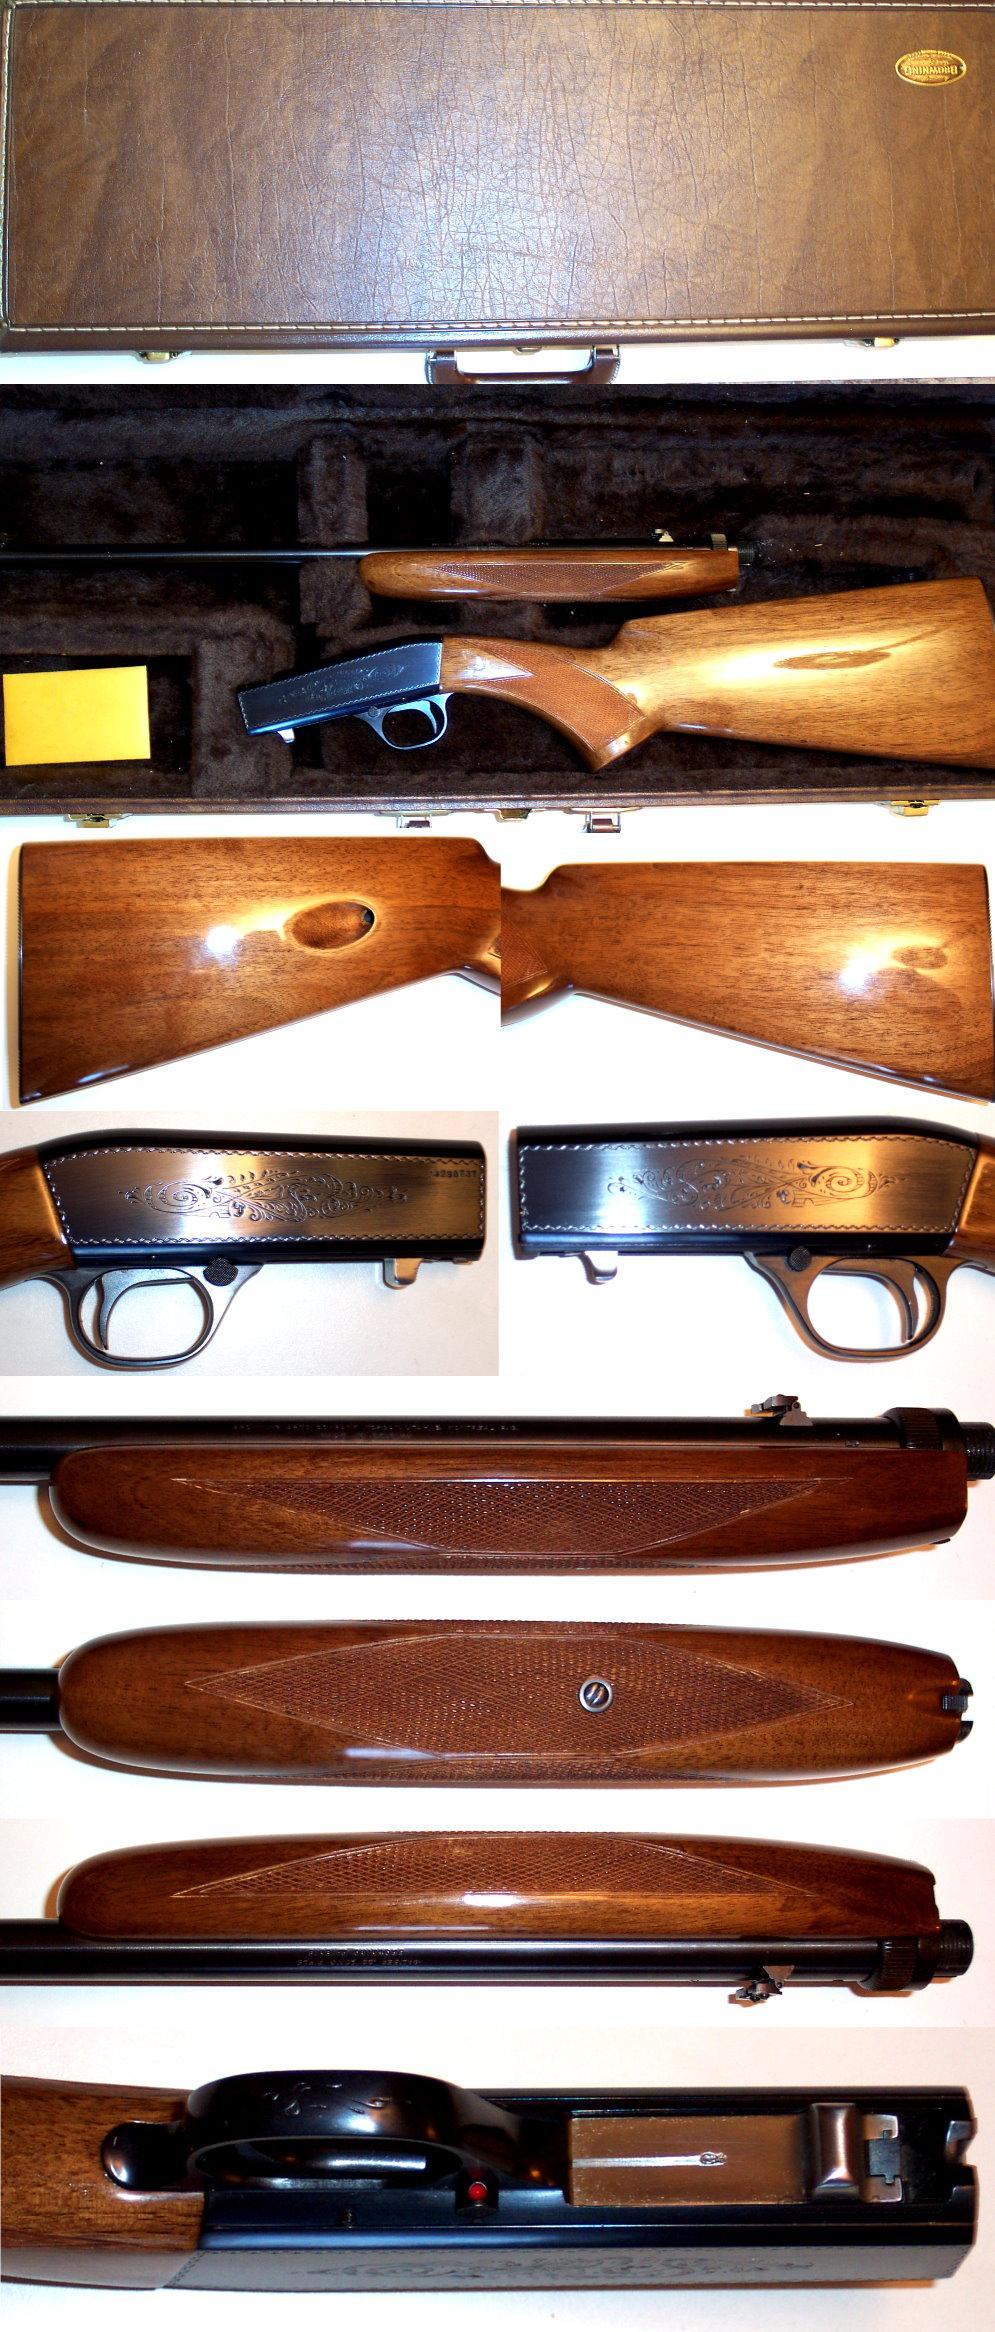 '72 Belgium Browning 22 auto as new in case  Guns > Rifles > Browning Rifles > Semi Auto > Hunting